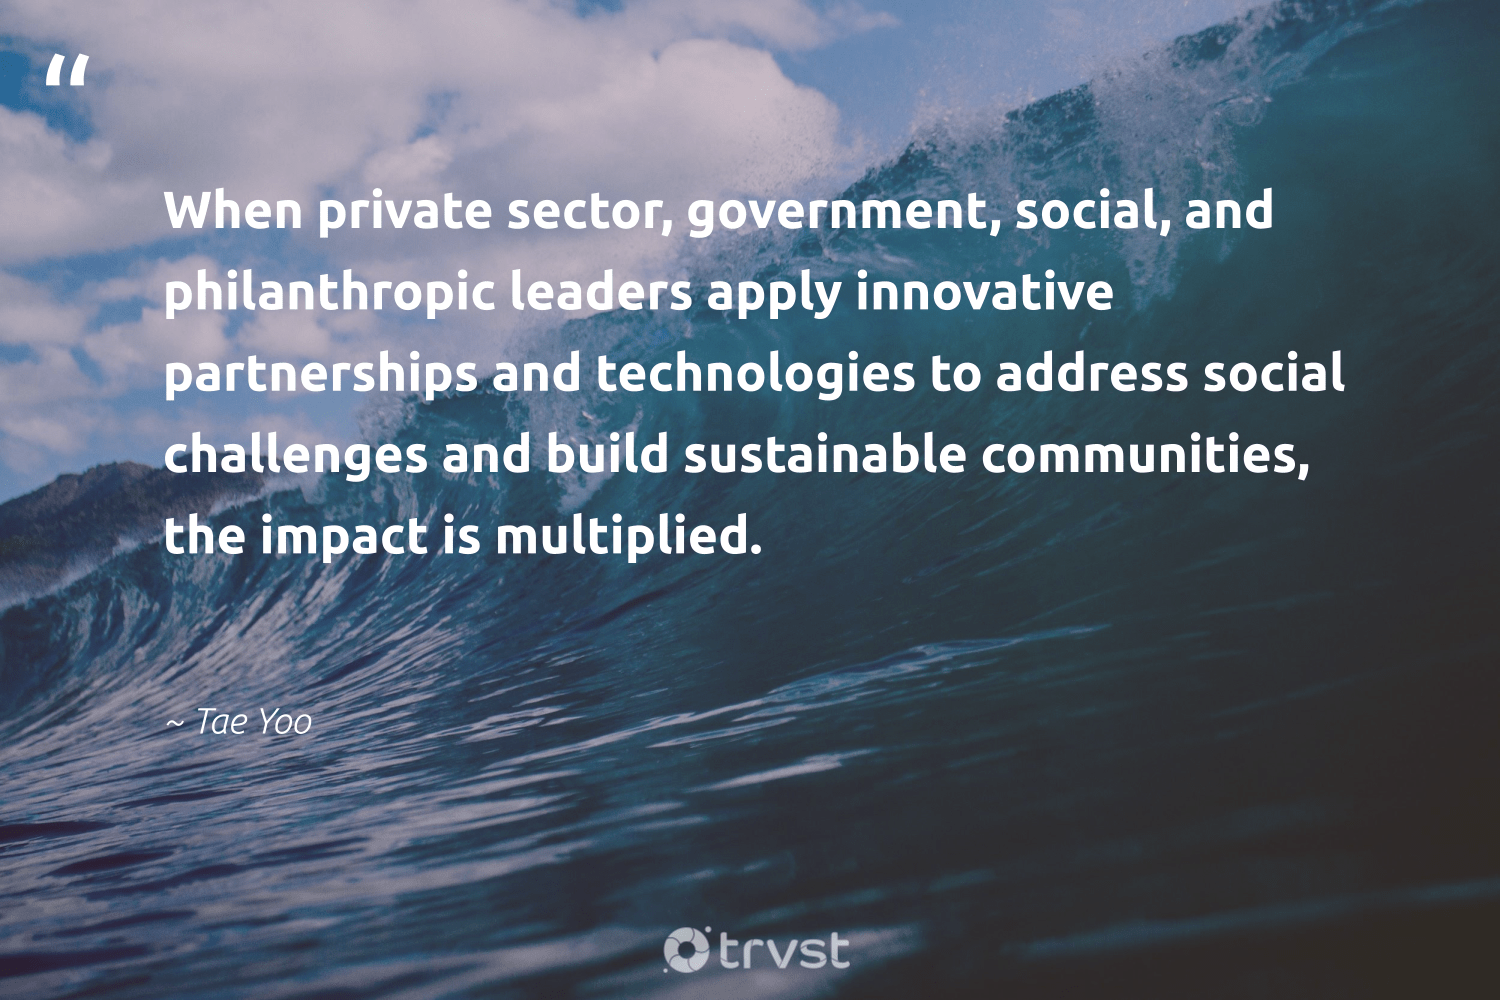 """When private sector, government, social, and philanthropic leaders apply innovative partnerships and technologies to address social challenges and build sustainable communities, the impact is multiplied.""  - Tae Yoo #trvst #quotes #impact #sustainable #communities #philanthropic #philanthropy #socialchange #itscooltobekind #thinkgreen #weareallone #togetherwecan"